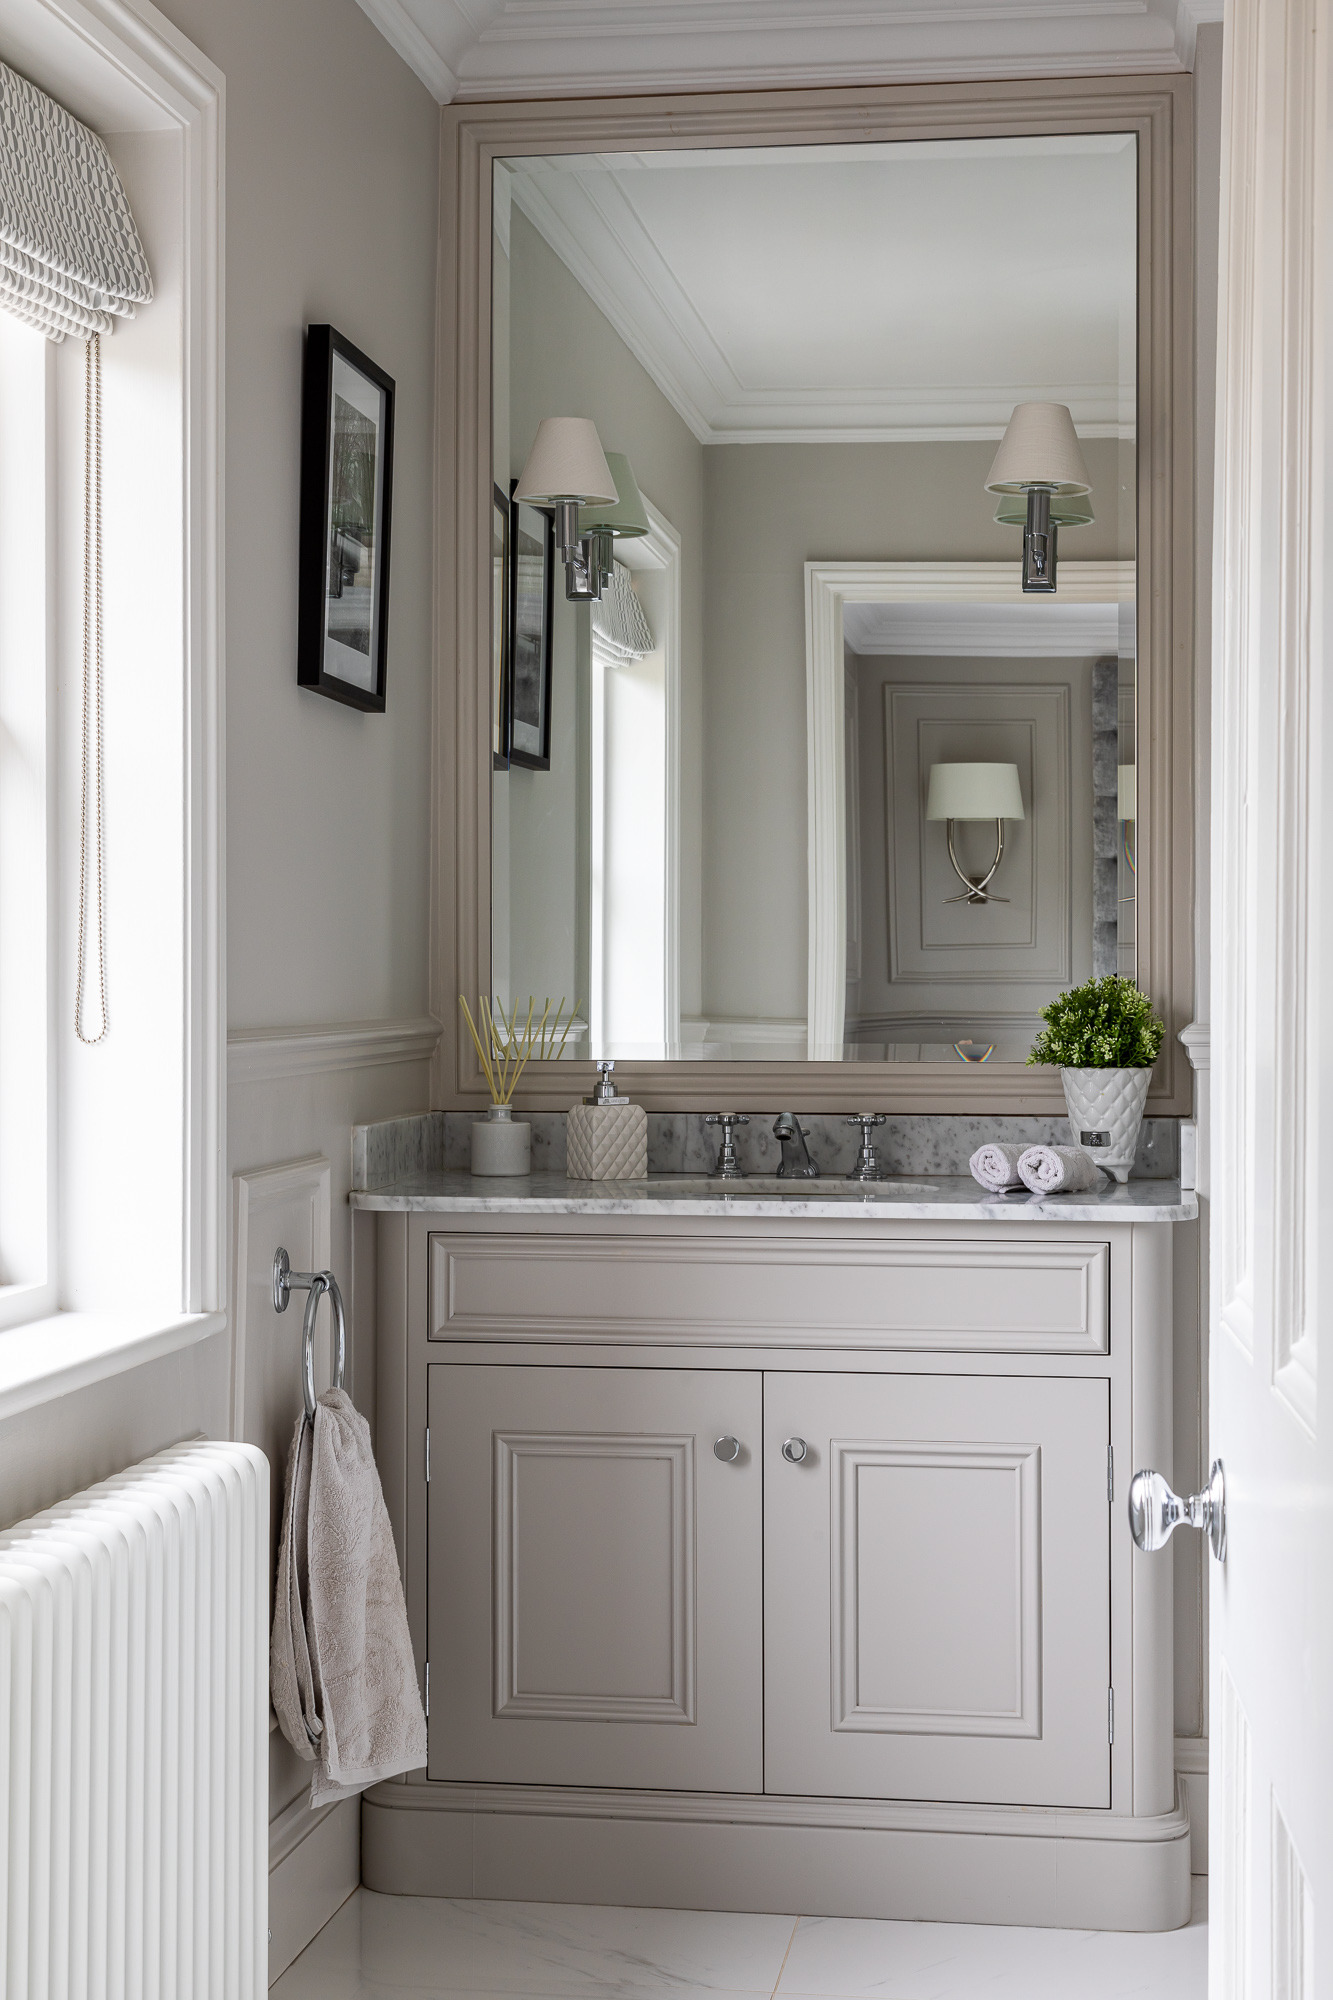 jonathan bond, interior photographer, ornate bathroom cabinet and sink, harlow